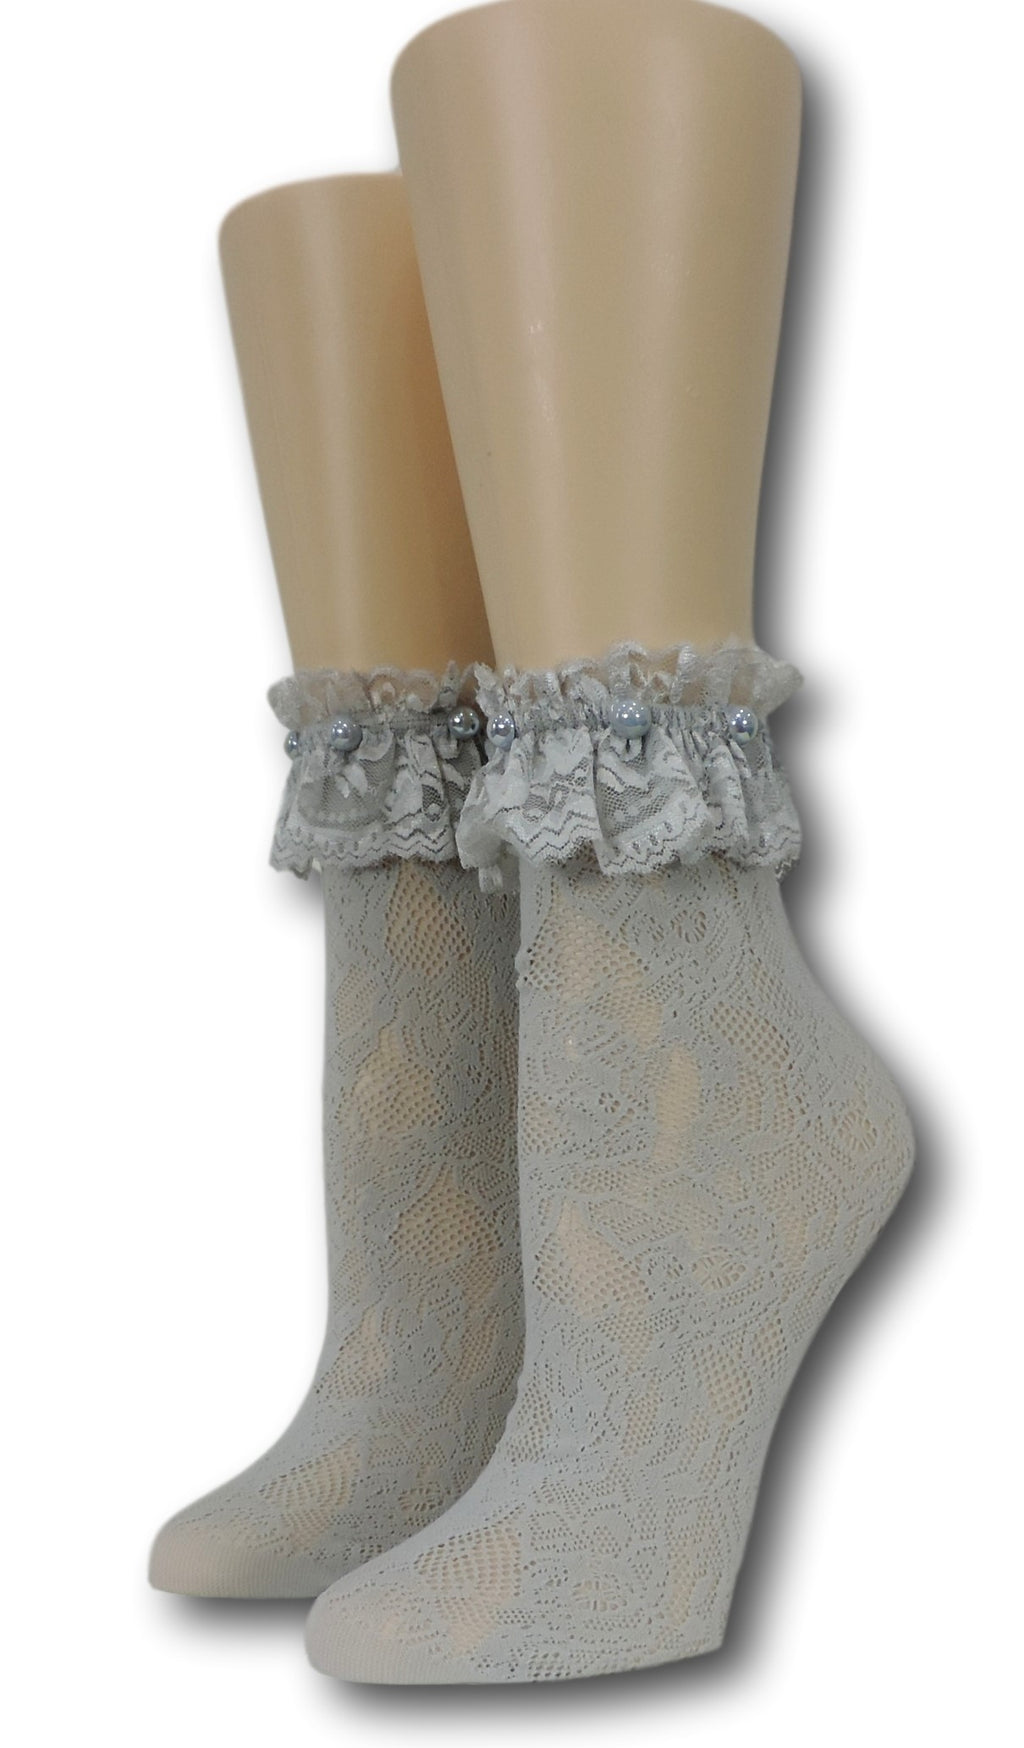 Grey Frilly Socks with beads